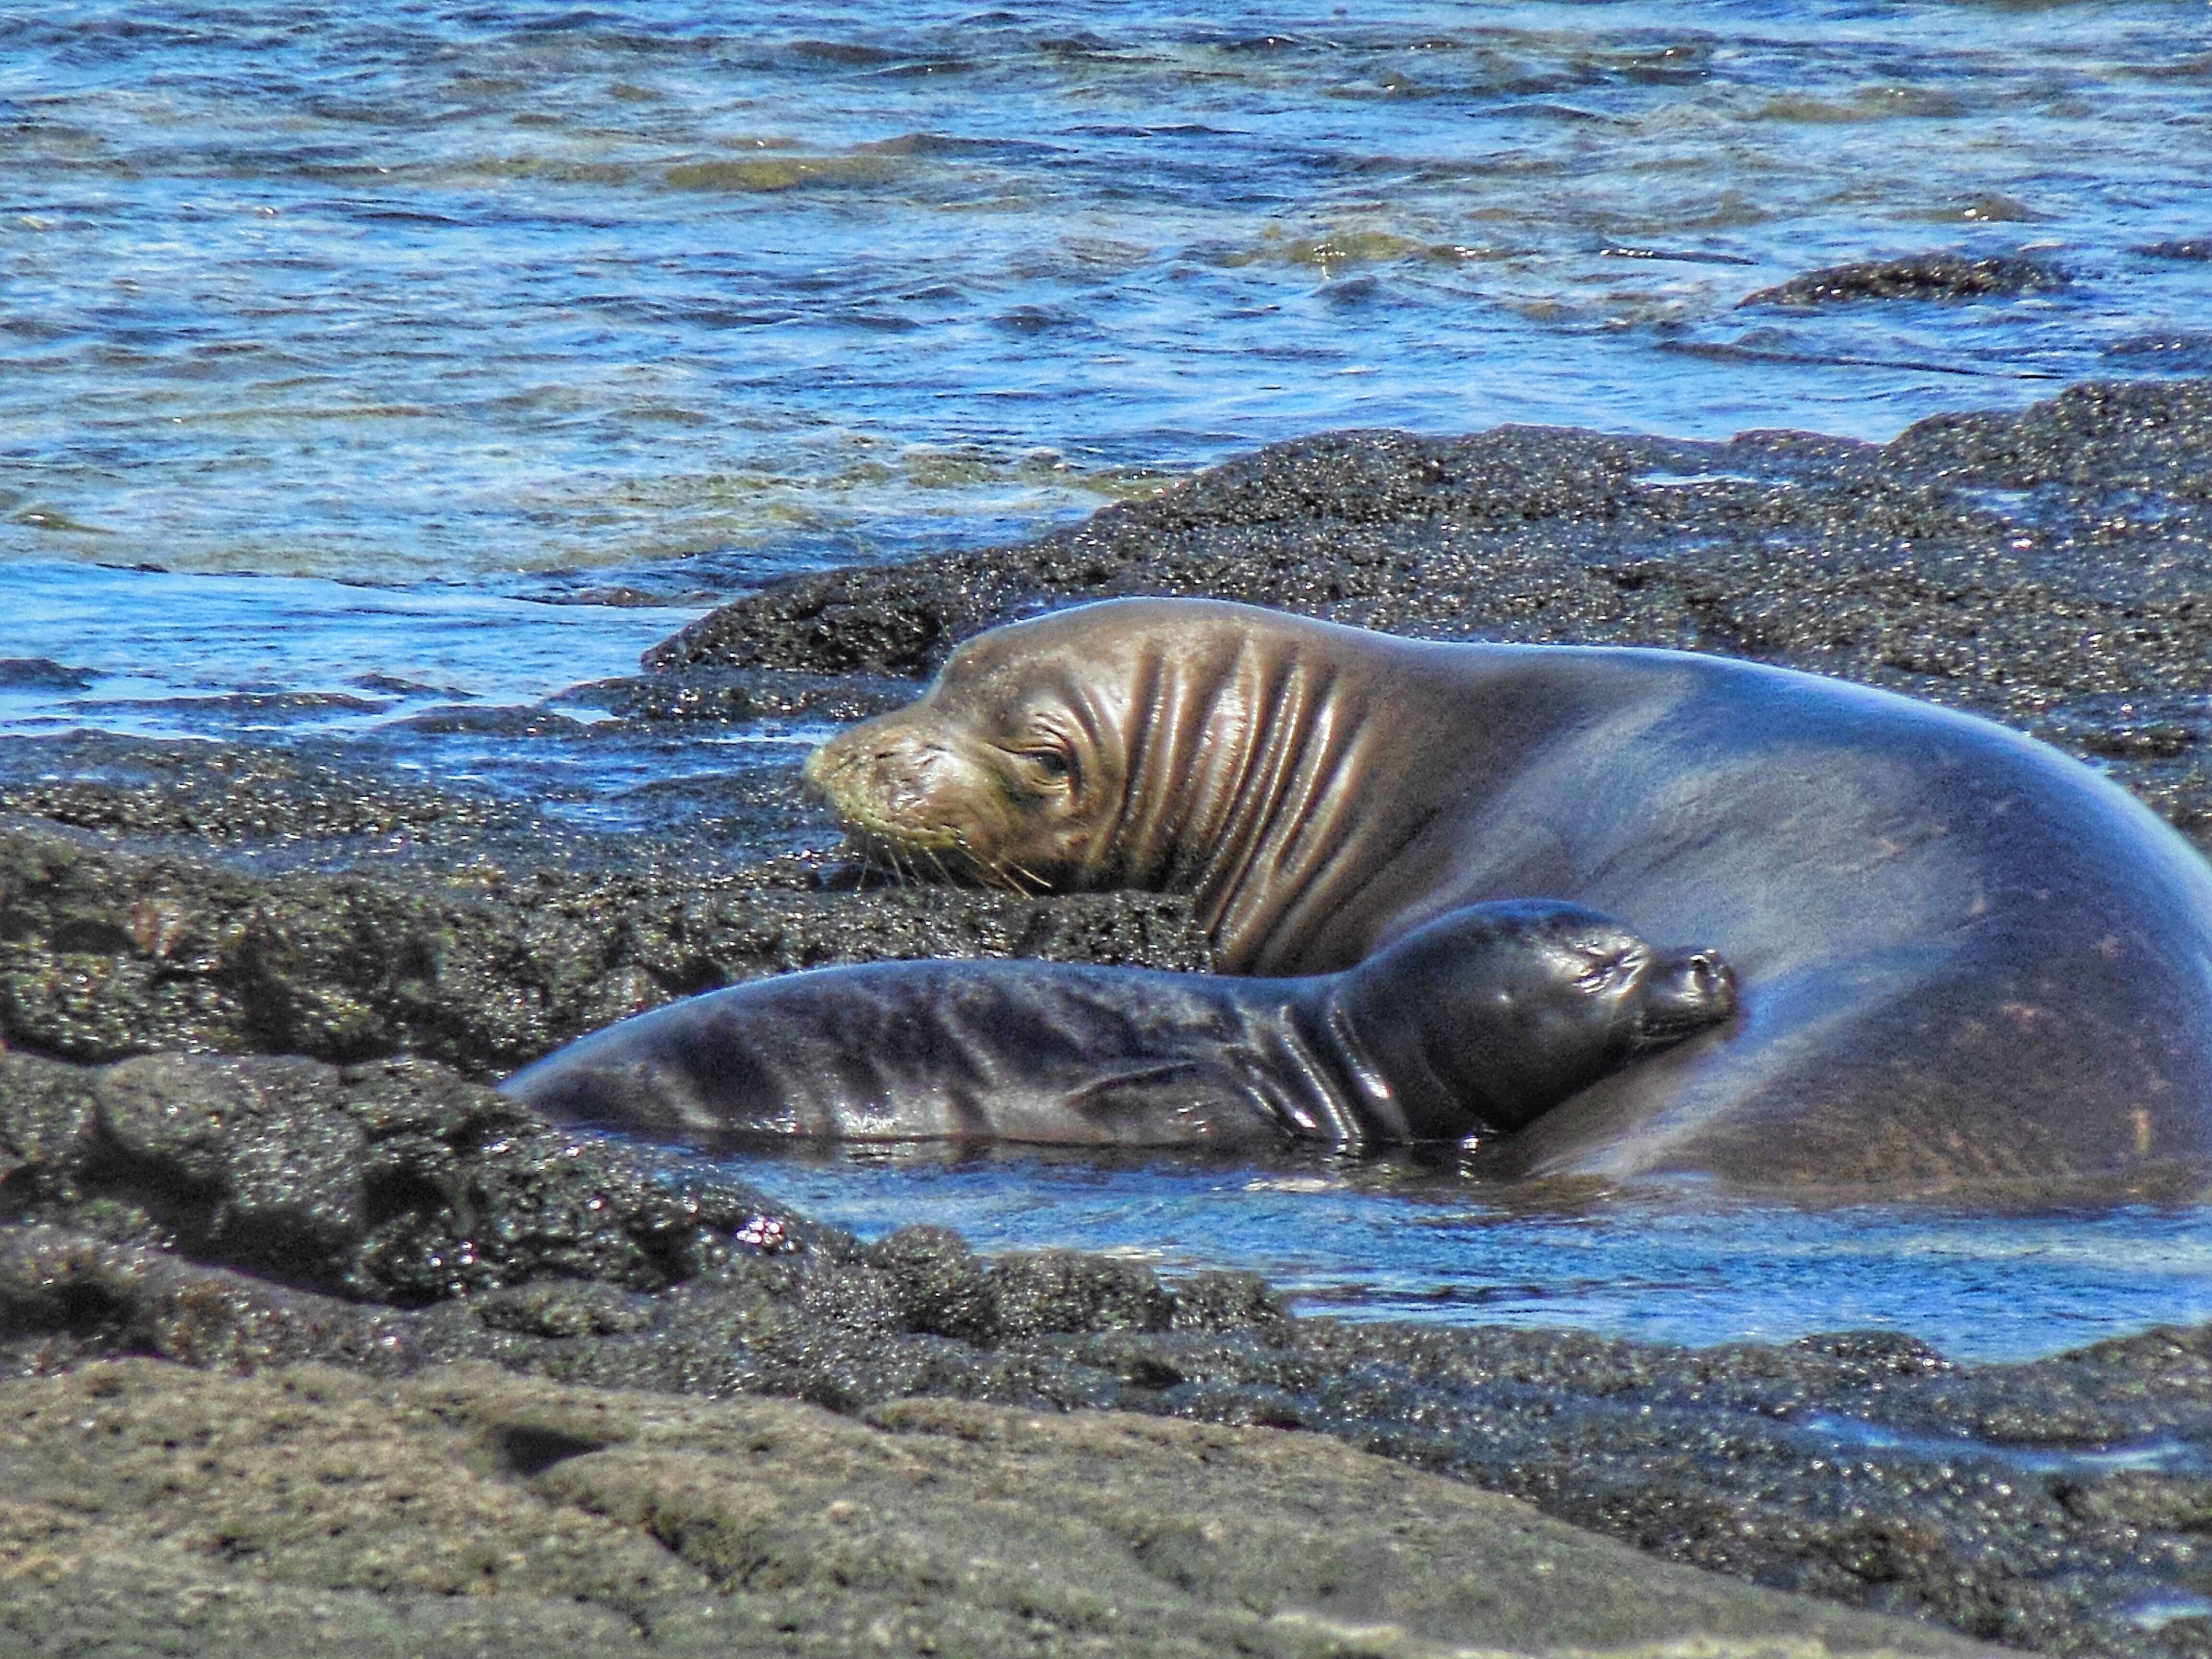 While nursing, a female seal stops eating and remains with her pup.